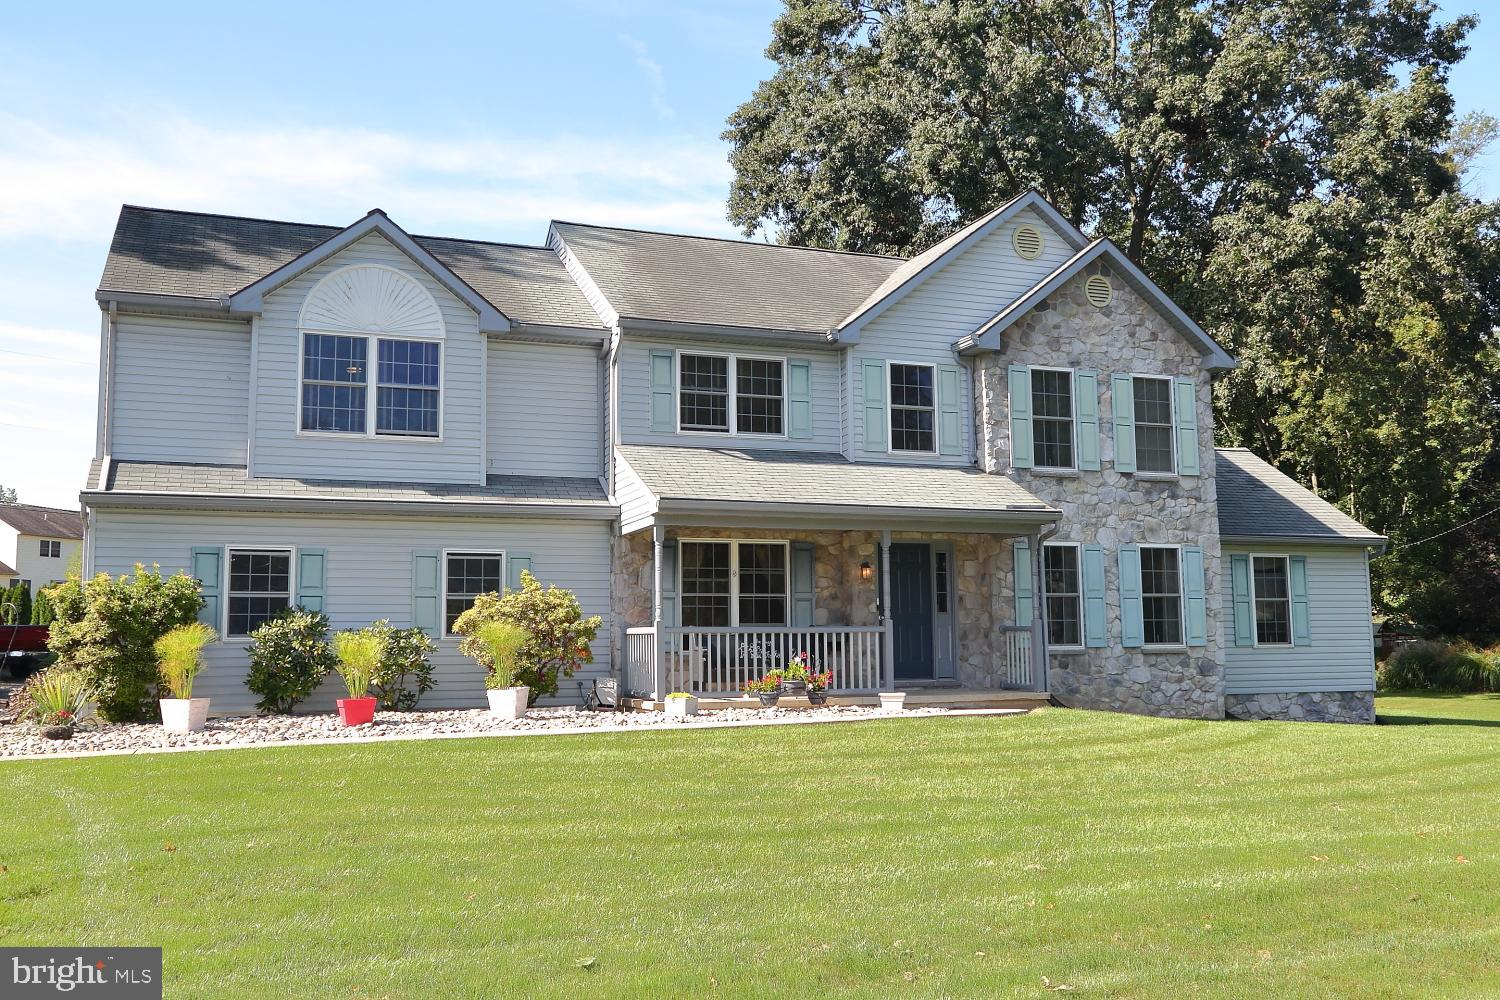 250 PARK AVENUE, MOUNT JOY, PA 17552